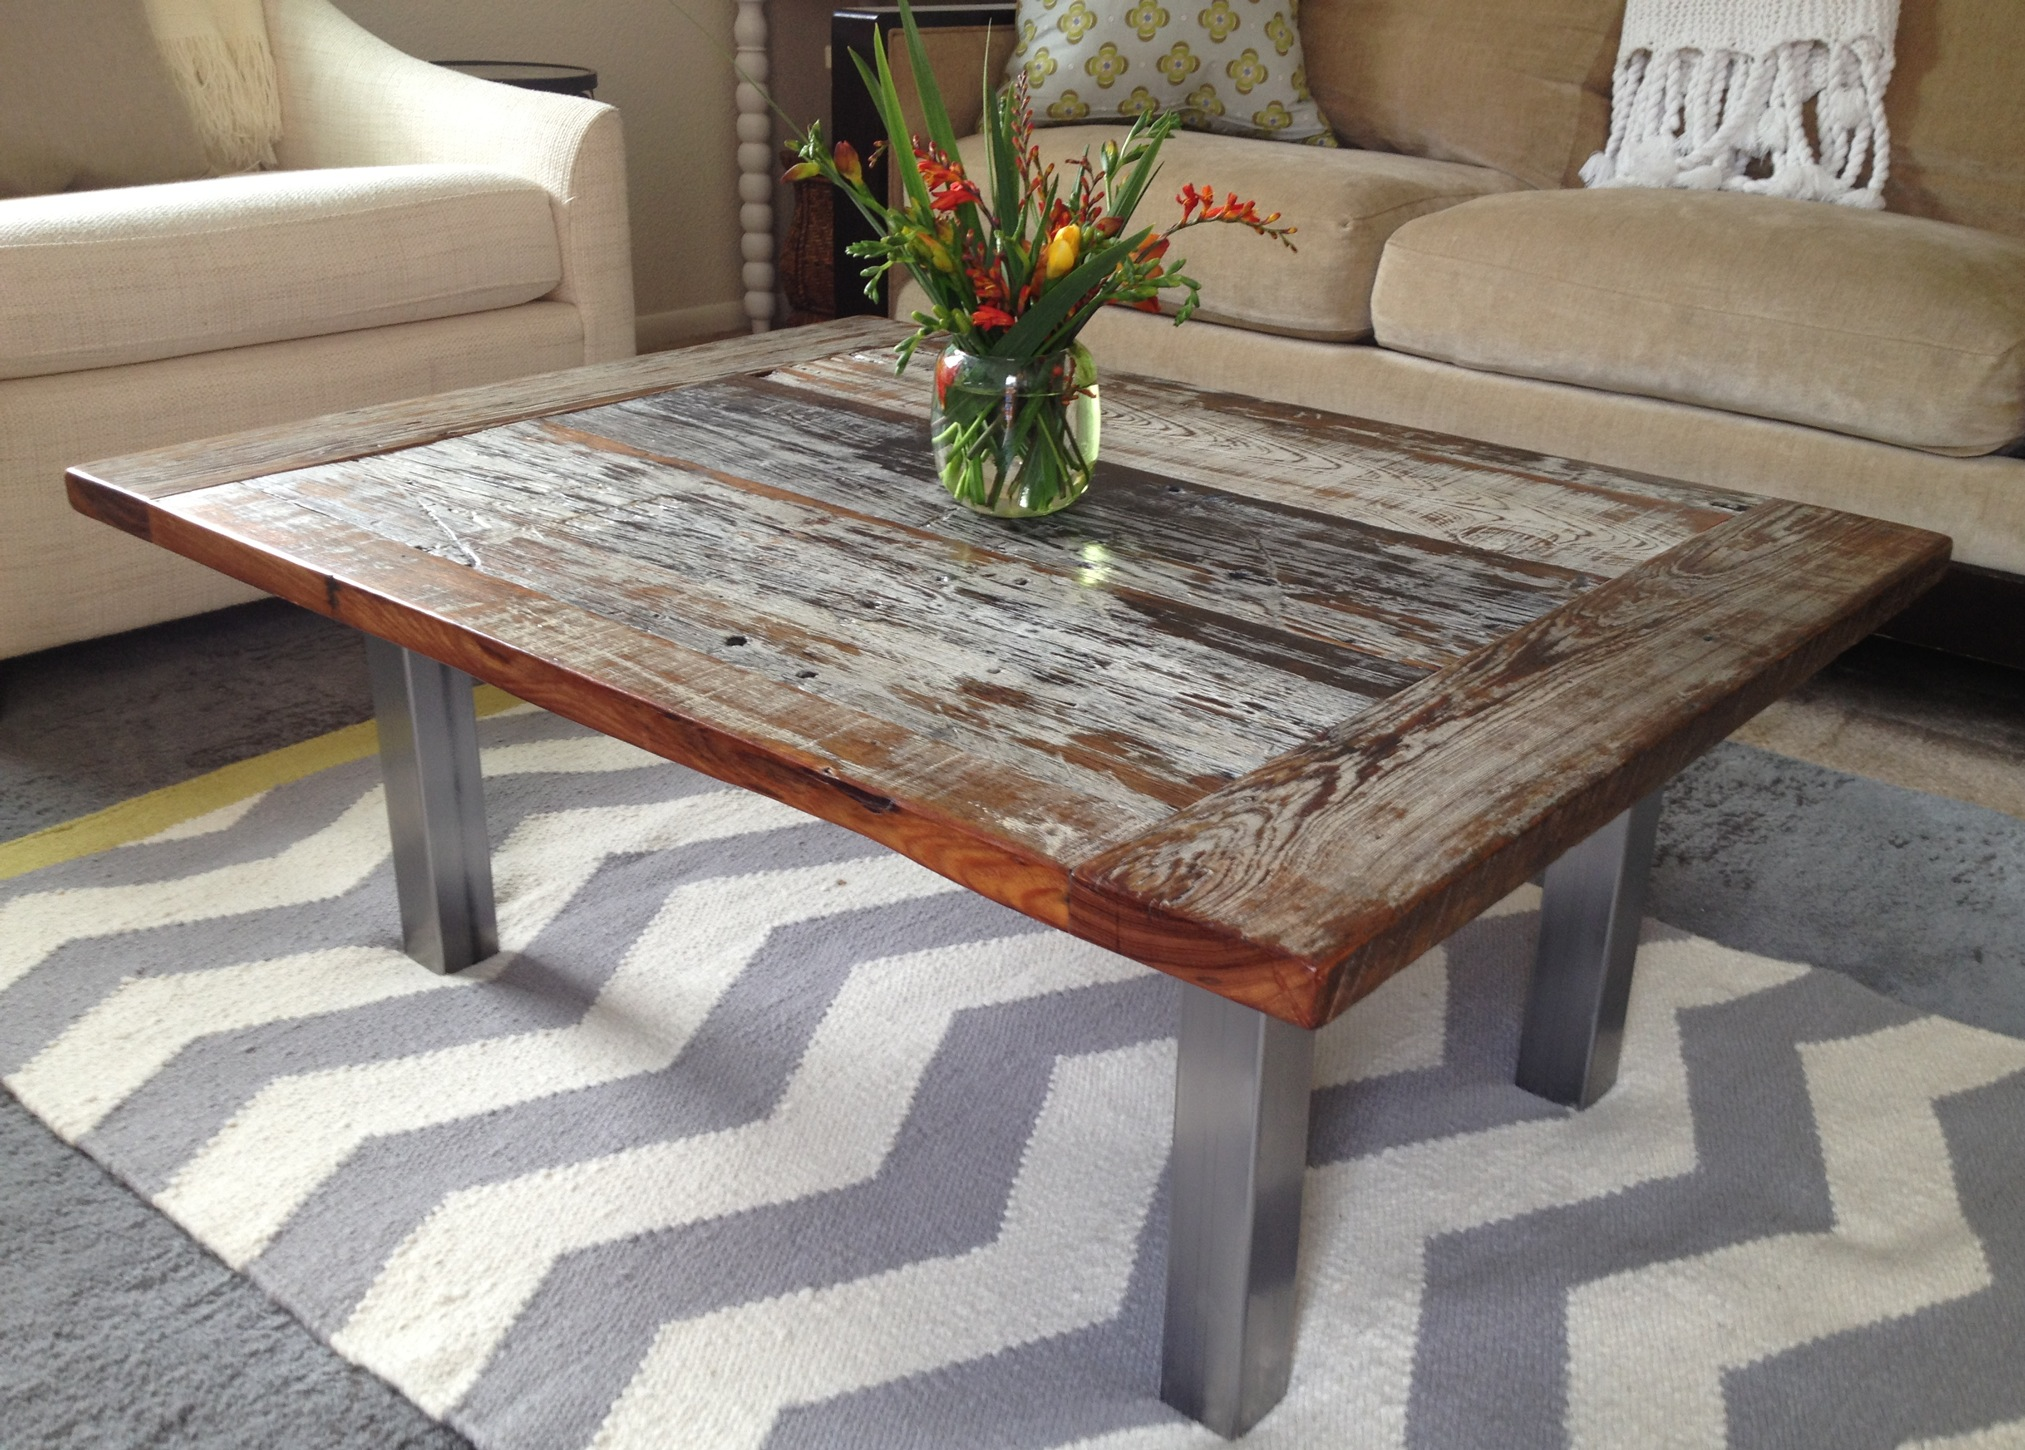 Reclaimed Cypress Coffee Tabe 3 & Repurposed Wood | The Coastal Craftsman